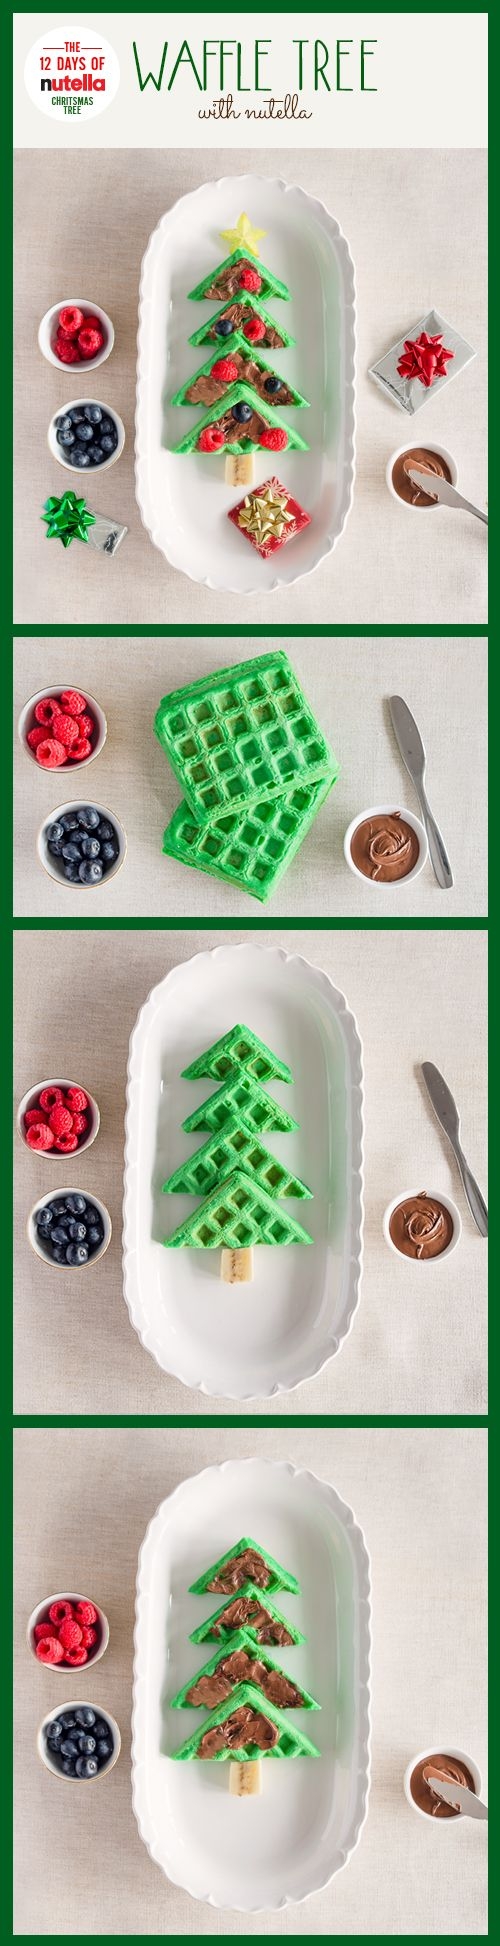 Trimming your own waffle tree with Nutella® is a tradition worth repeating year after delicious year. Just add green food coloring to your waffle batter, cook in a waffle iron, spread Nutella on waffles and use your favorite fruits as decorations. One look and your family will be rockin' around the kitchen table.